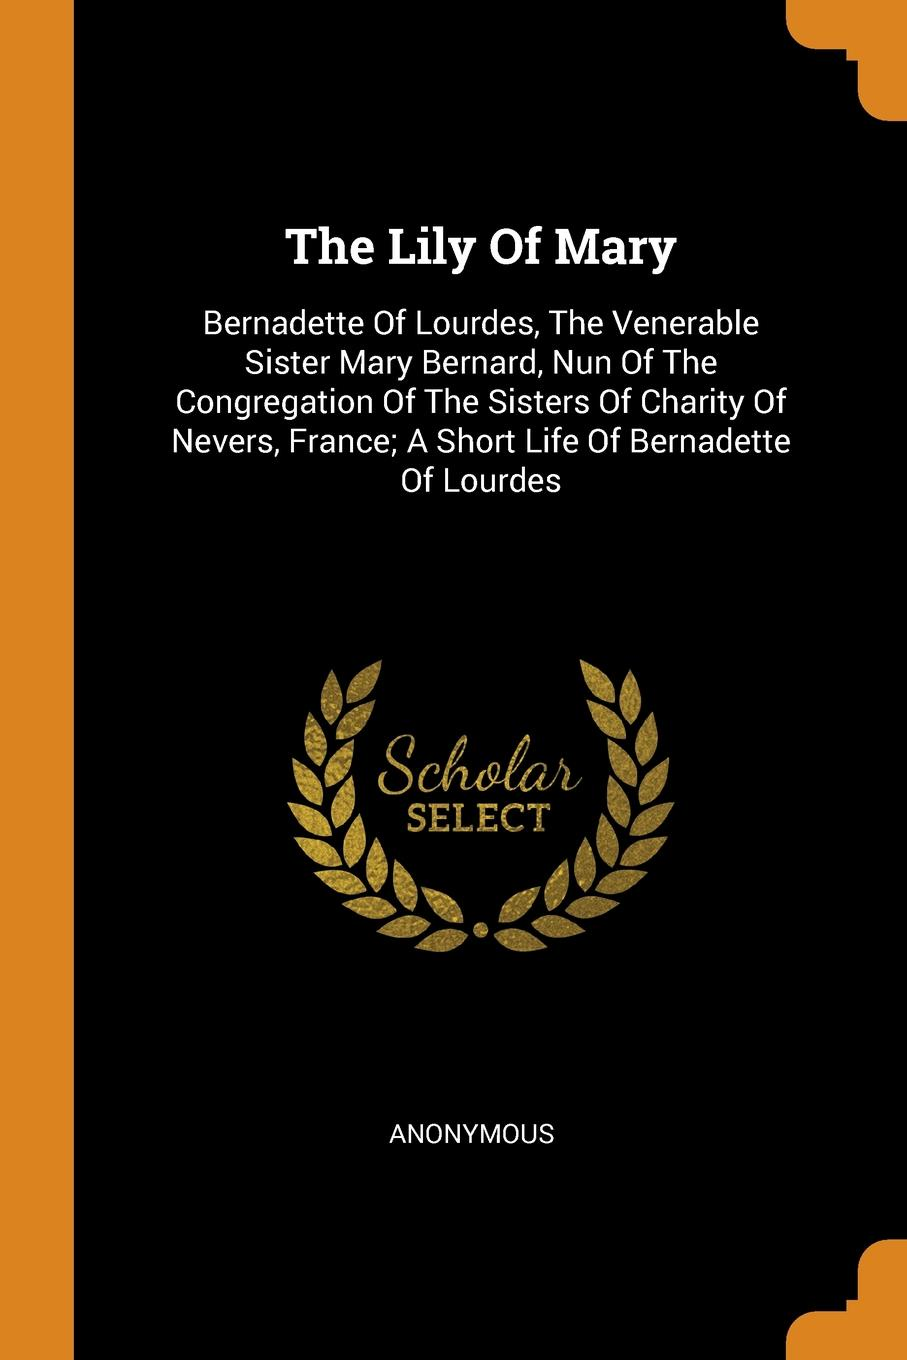 The Lily Of Mary. Bernadette Of Lourdes, The Venerable Sister Mary Bernard, Nun Of The Congregation Of The Sisters Of Charity Of Nevers, France; A Short Life Of Bernadette Of Lourdes